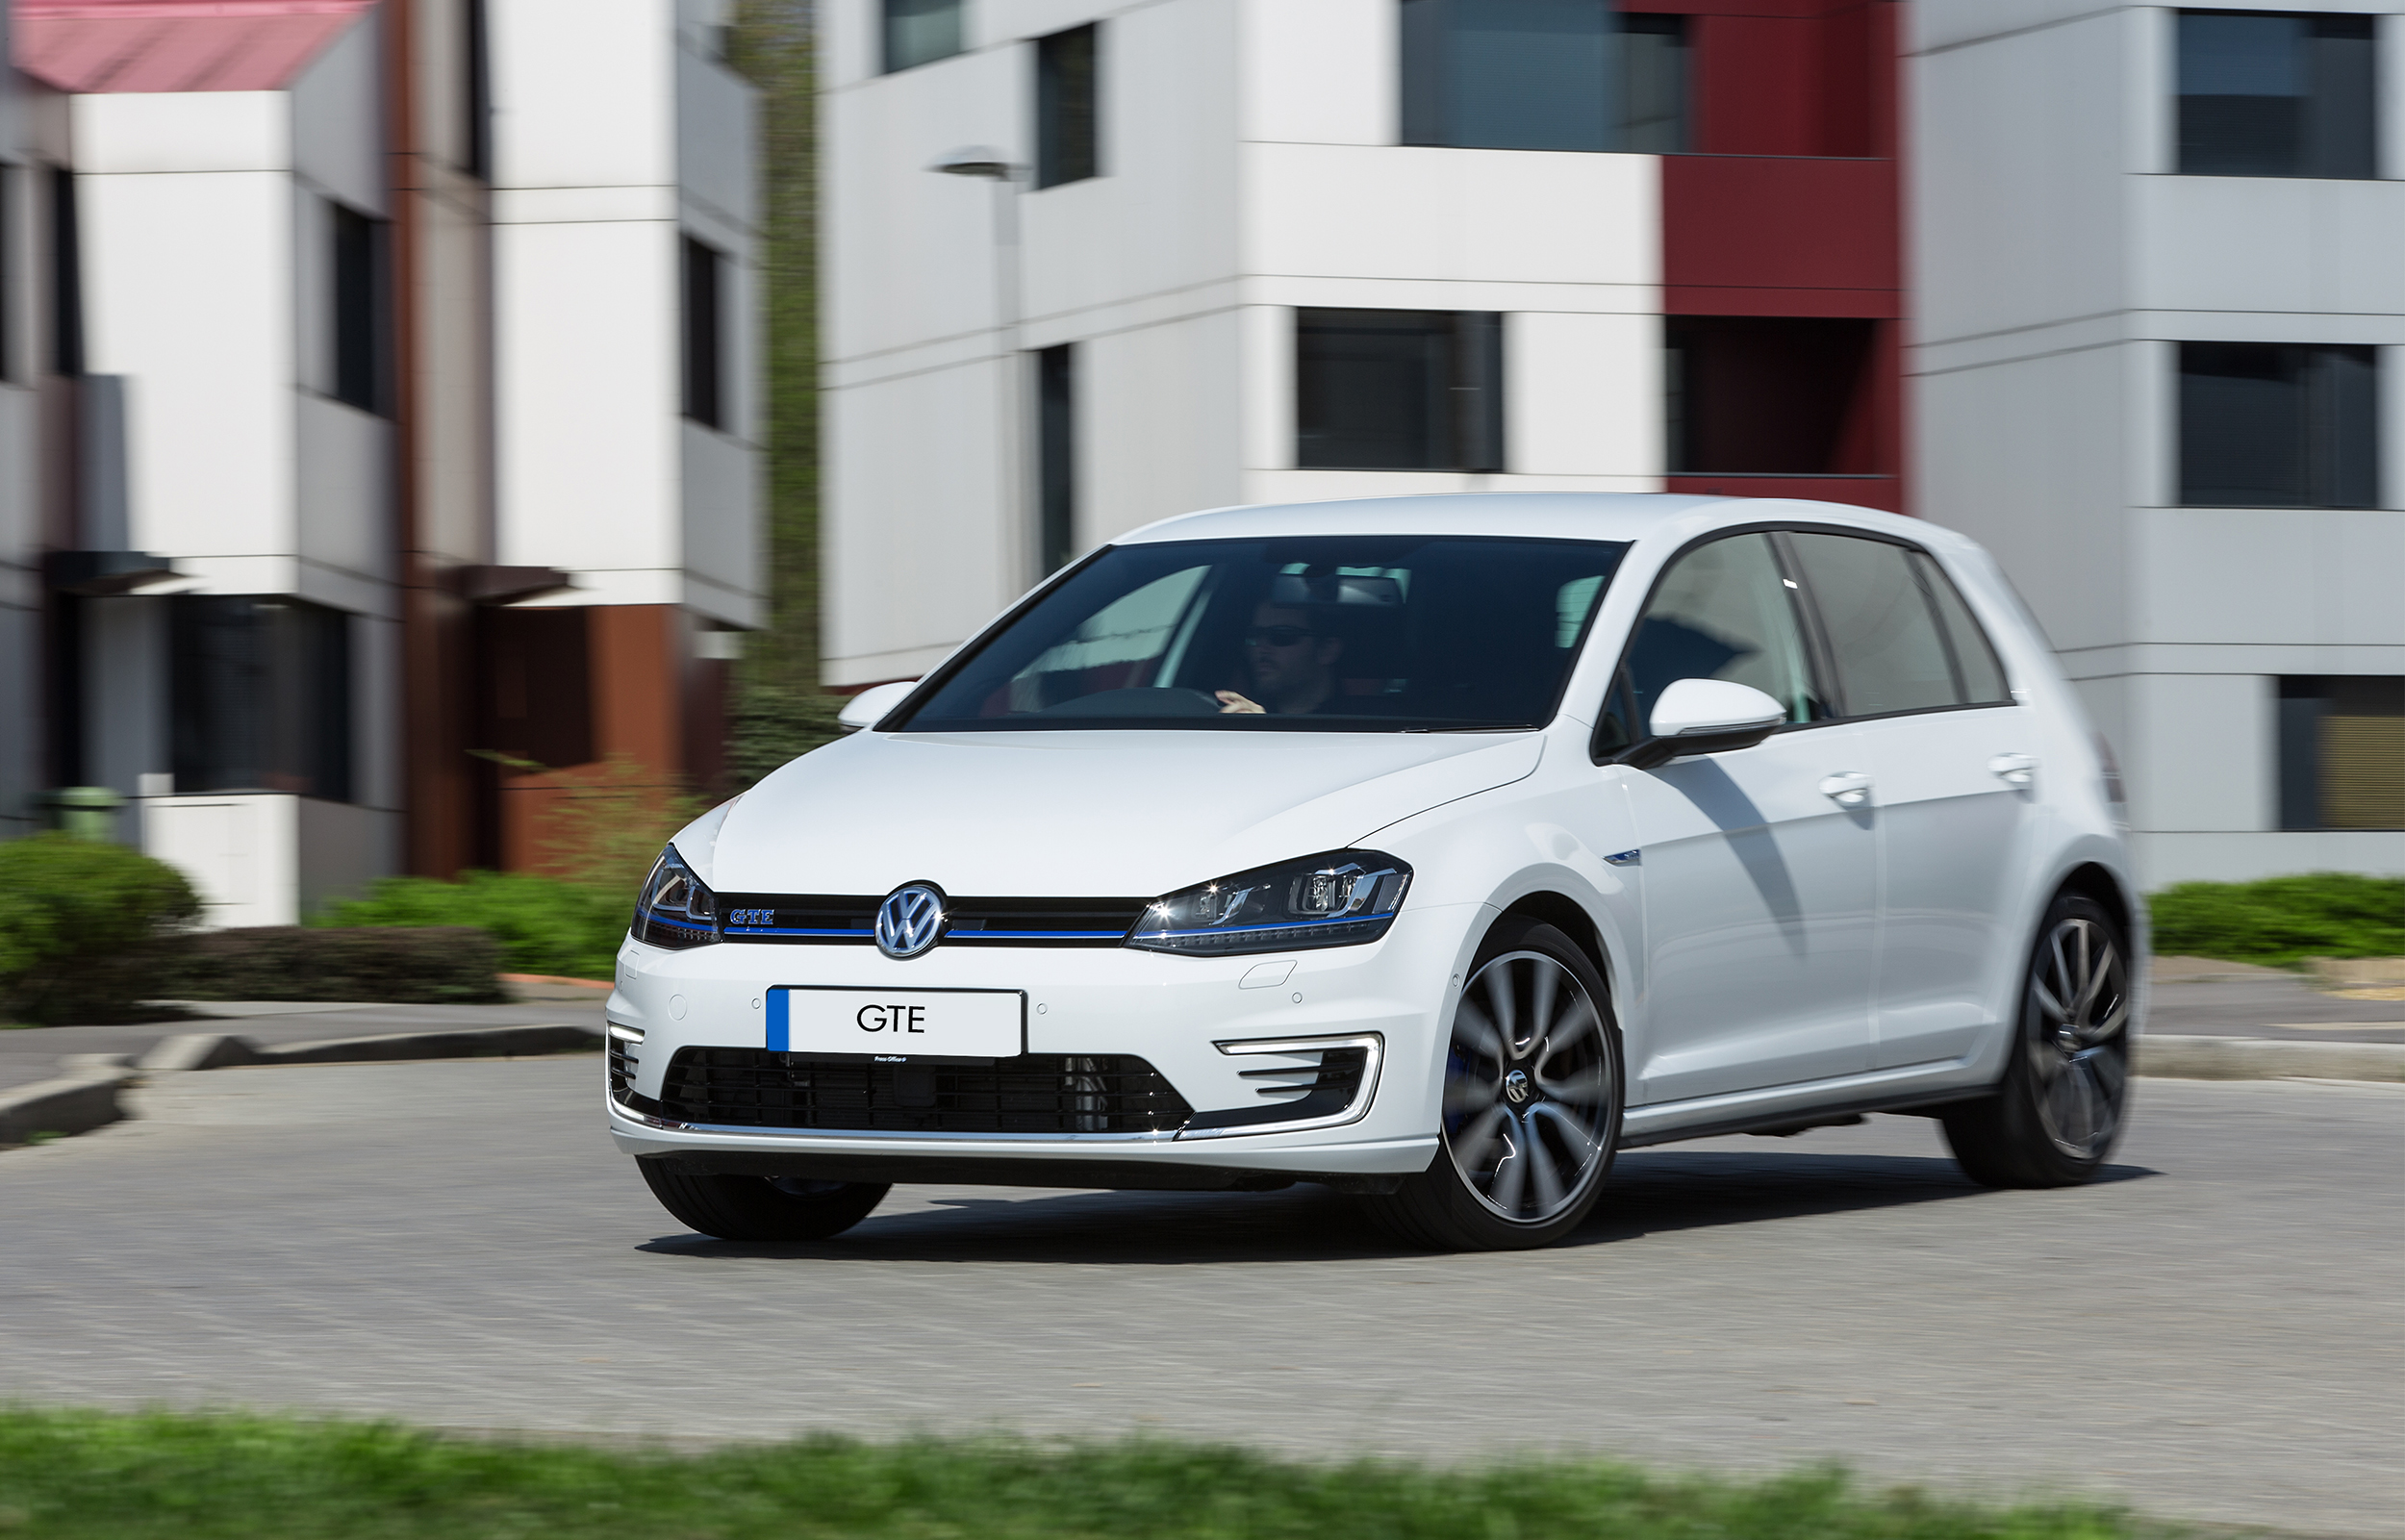 volkswagen golf gte hybrid technology with promise of gti performance 32house. Black Bedroom Furniture Sets. Home Design Ideas